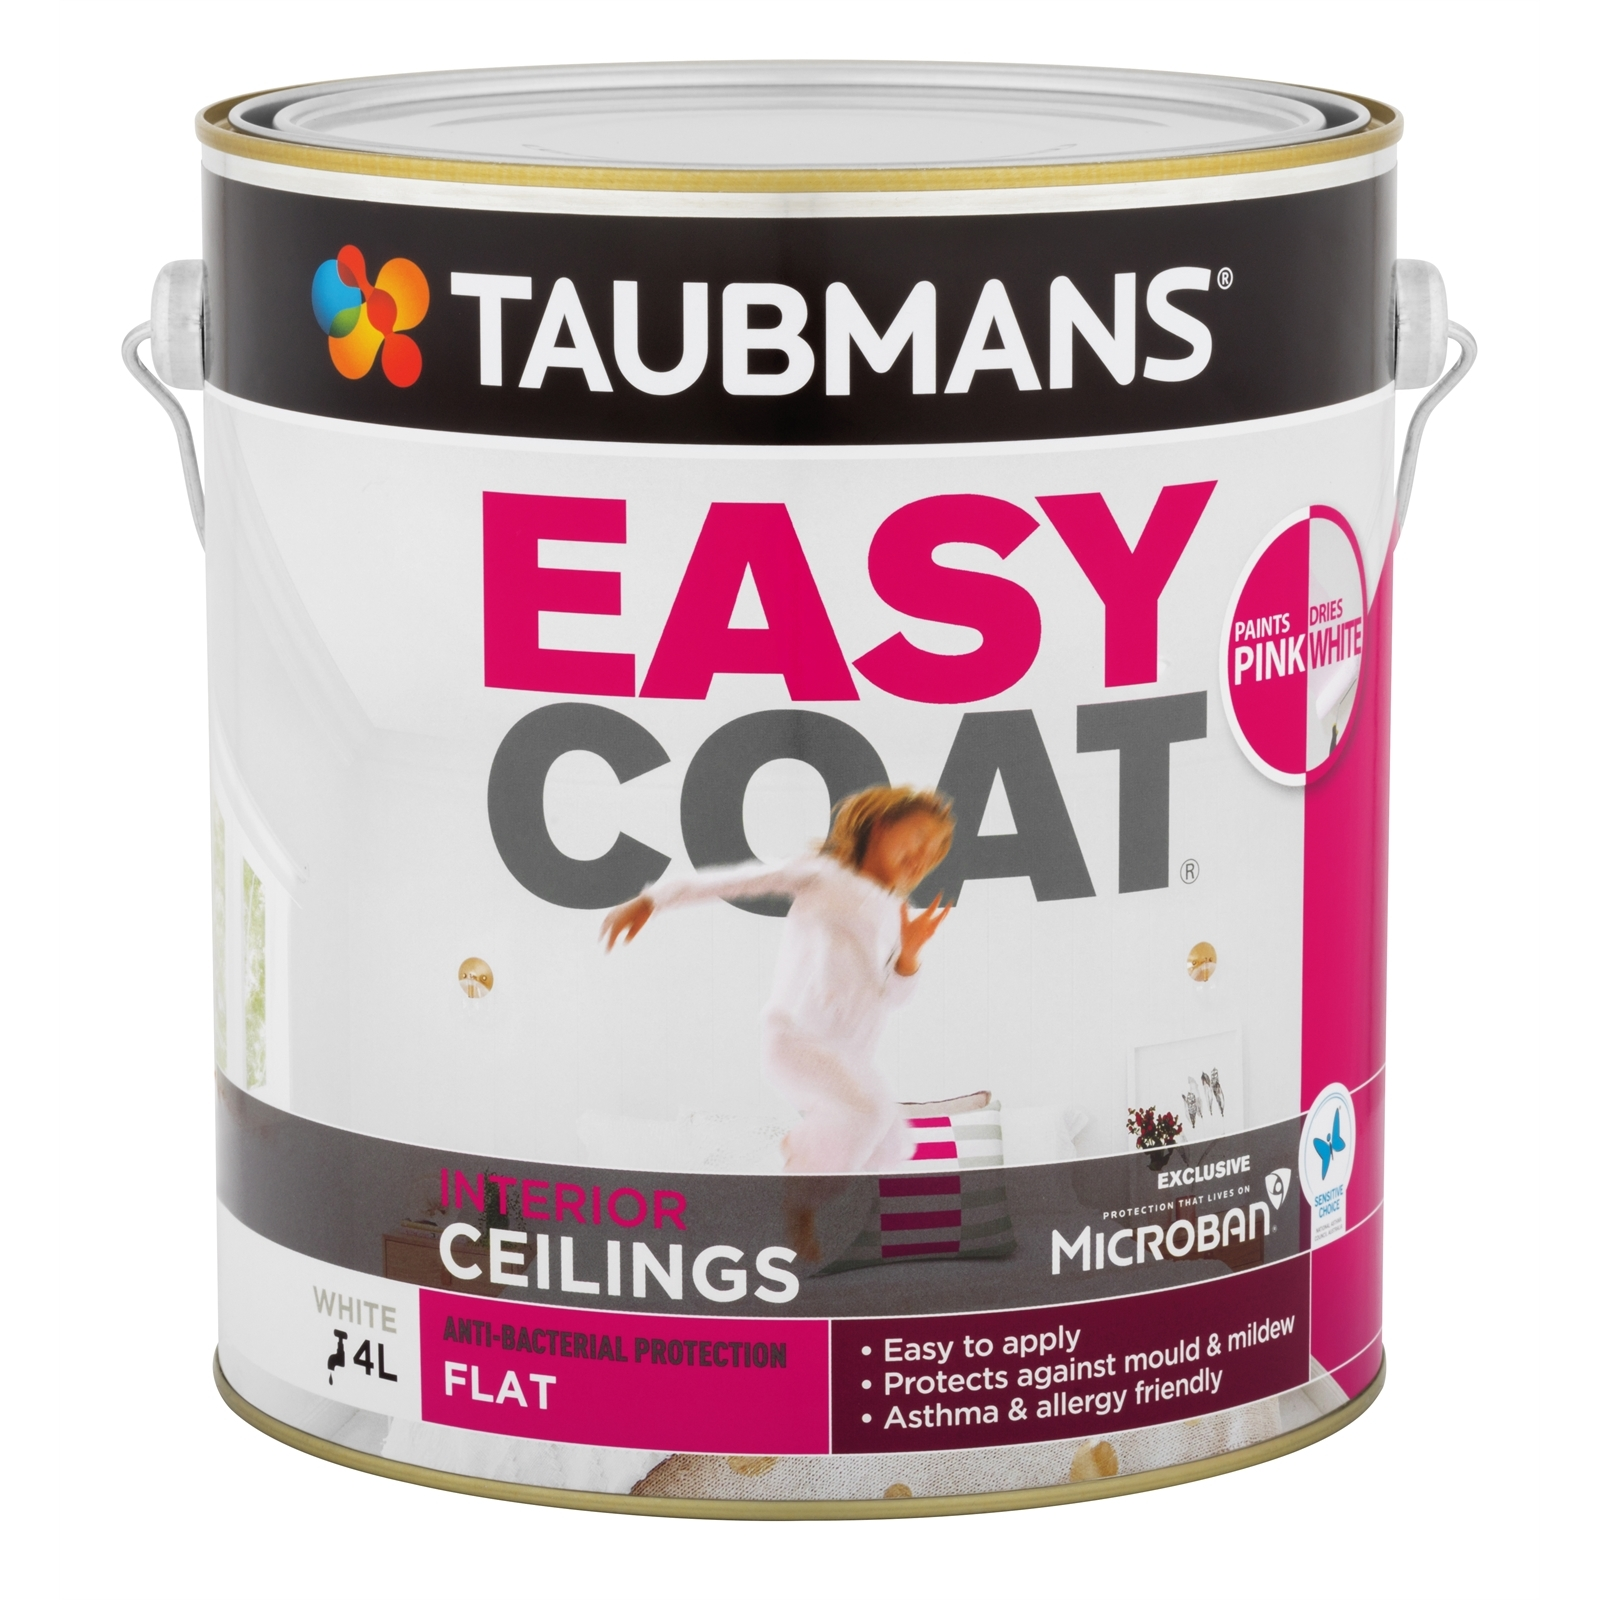 Taubmans Easycoat Flat Pink To White Ceiling Paint - 4L